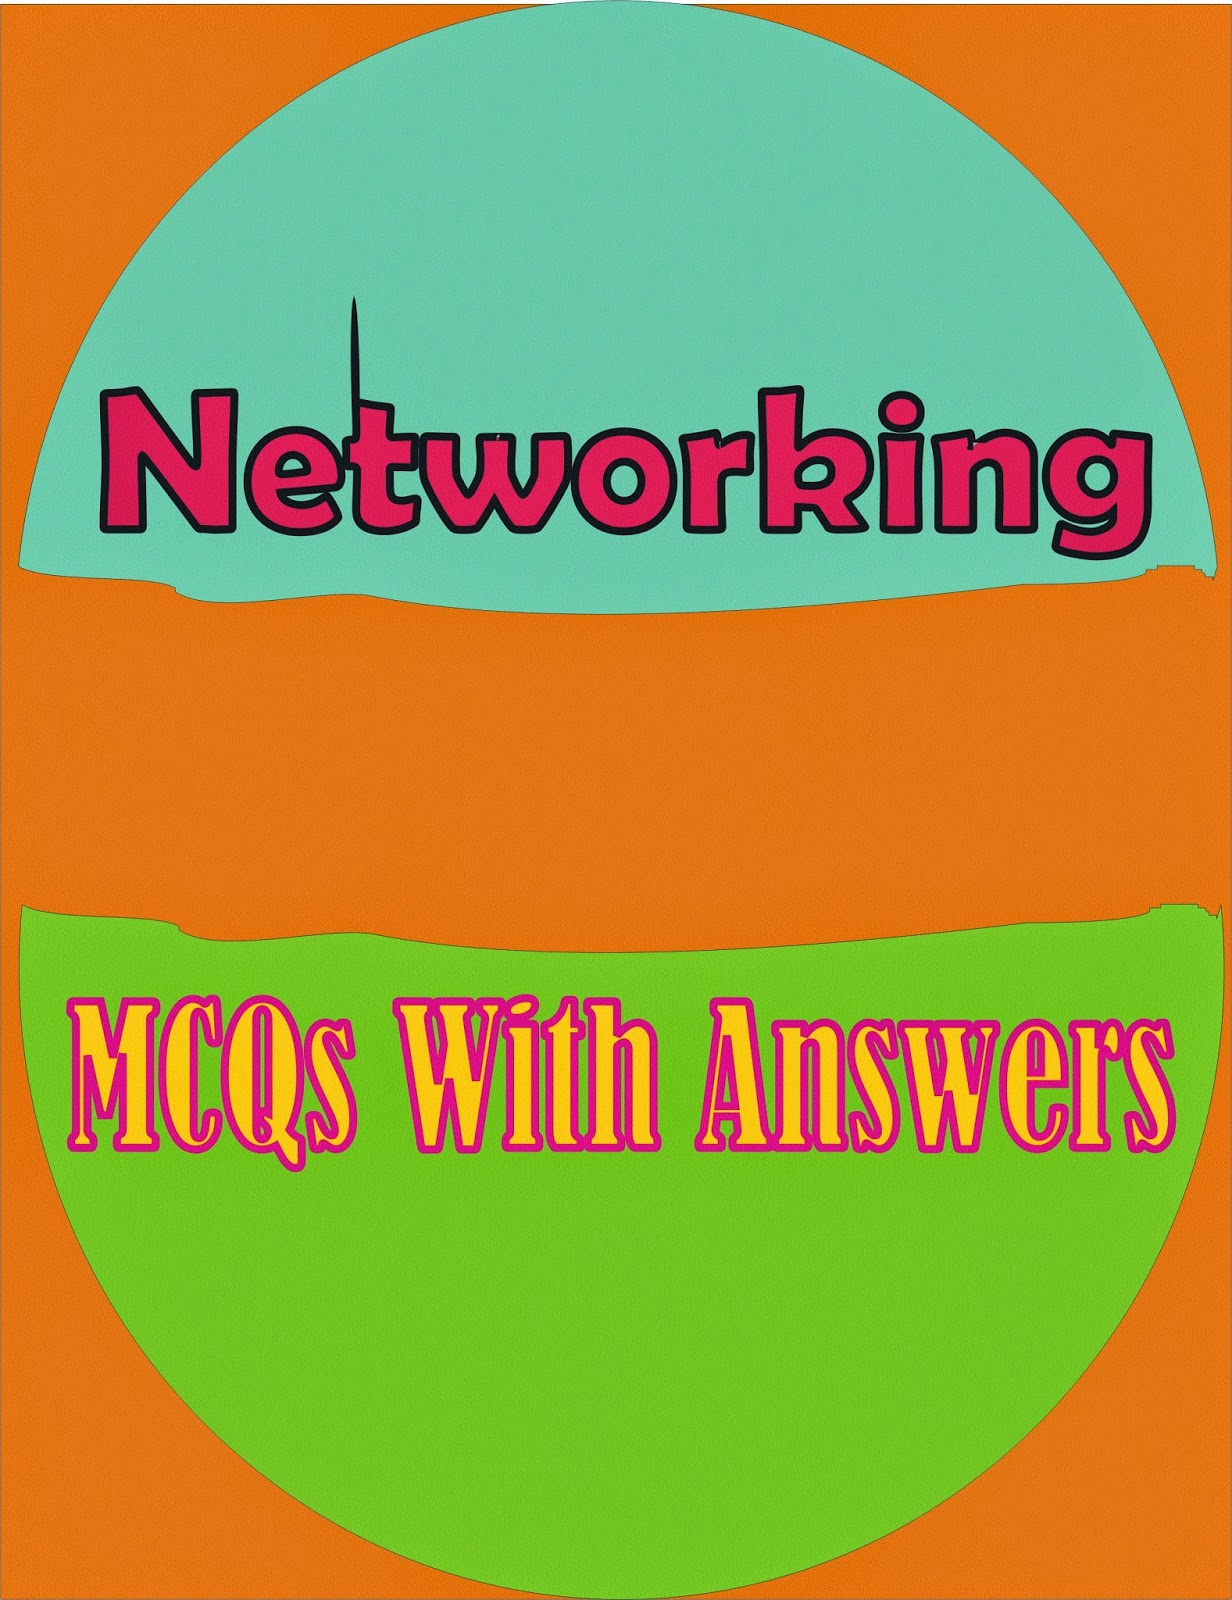 computer mcqs Incoming search terms: basic computer mcqs basic computer mcq computer basic mcq basic computer mcqs with answers what do you call a single point on a computer screen.